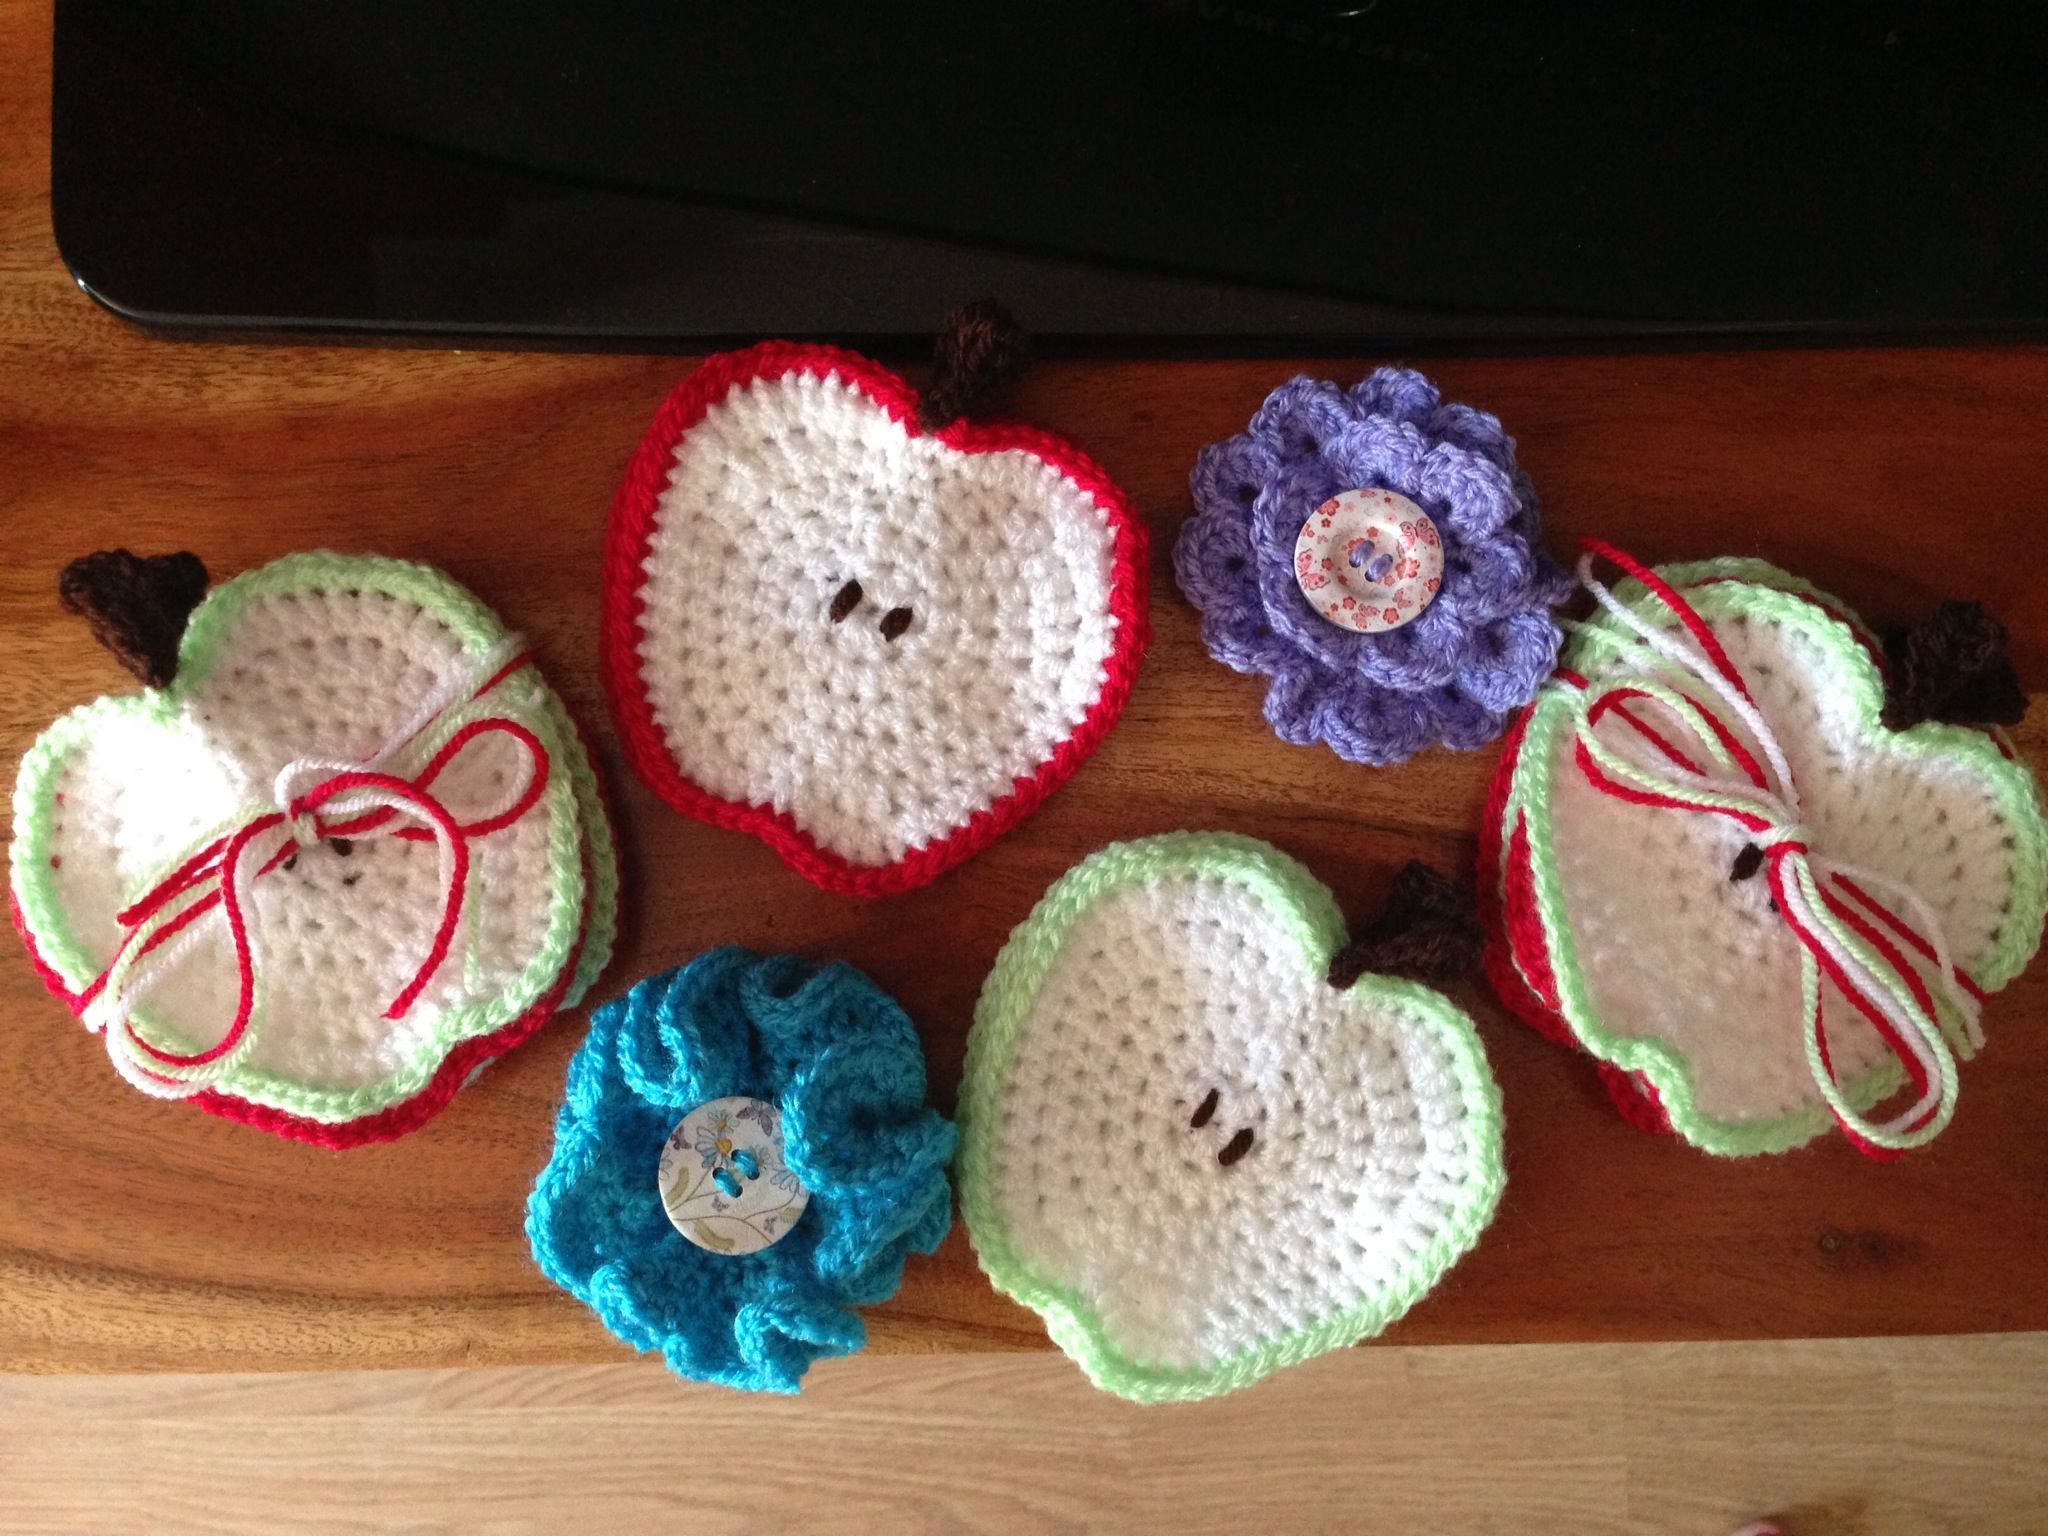 Crochet apple coasters and flower broaches for end of year